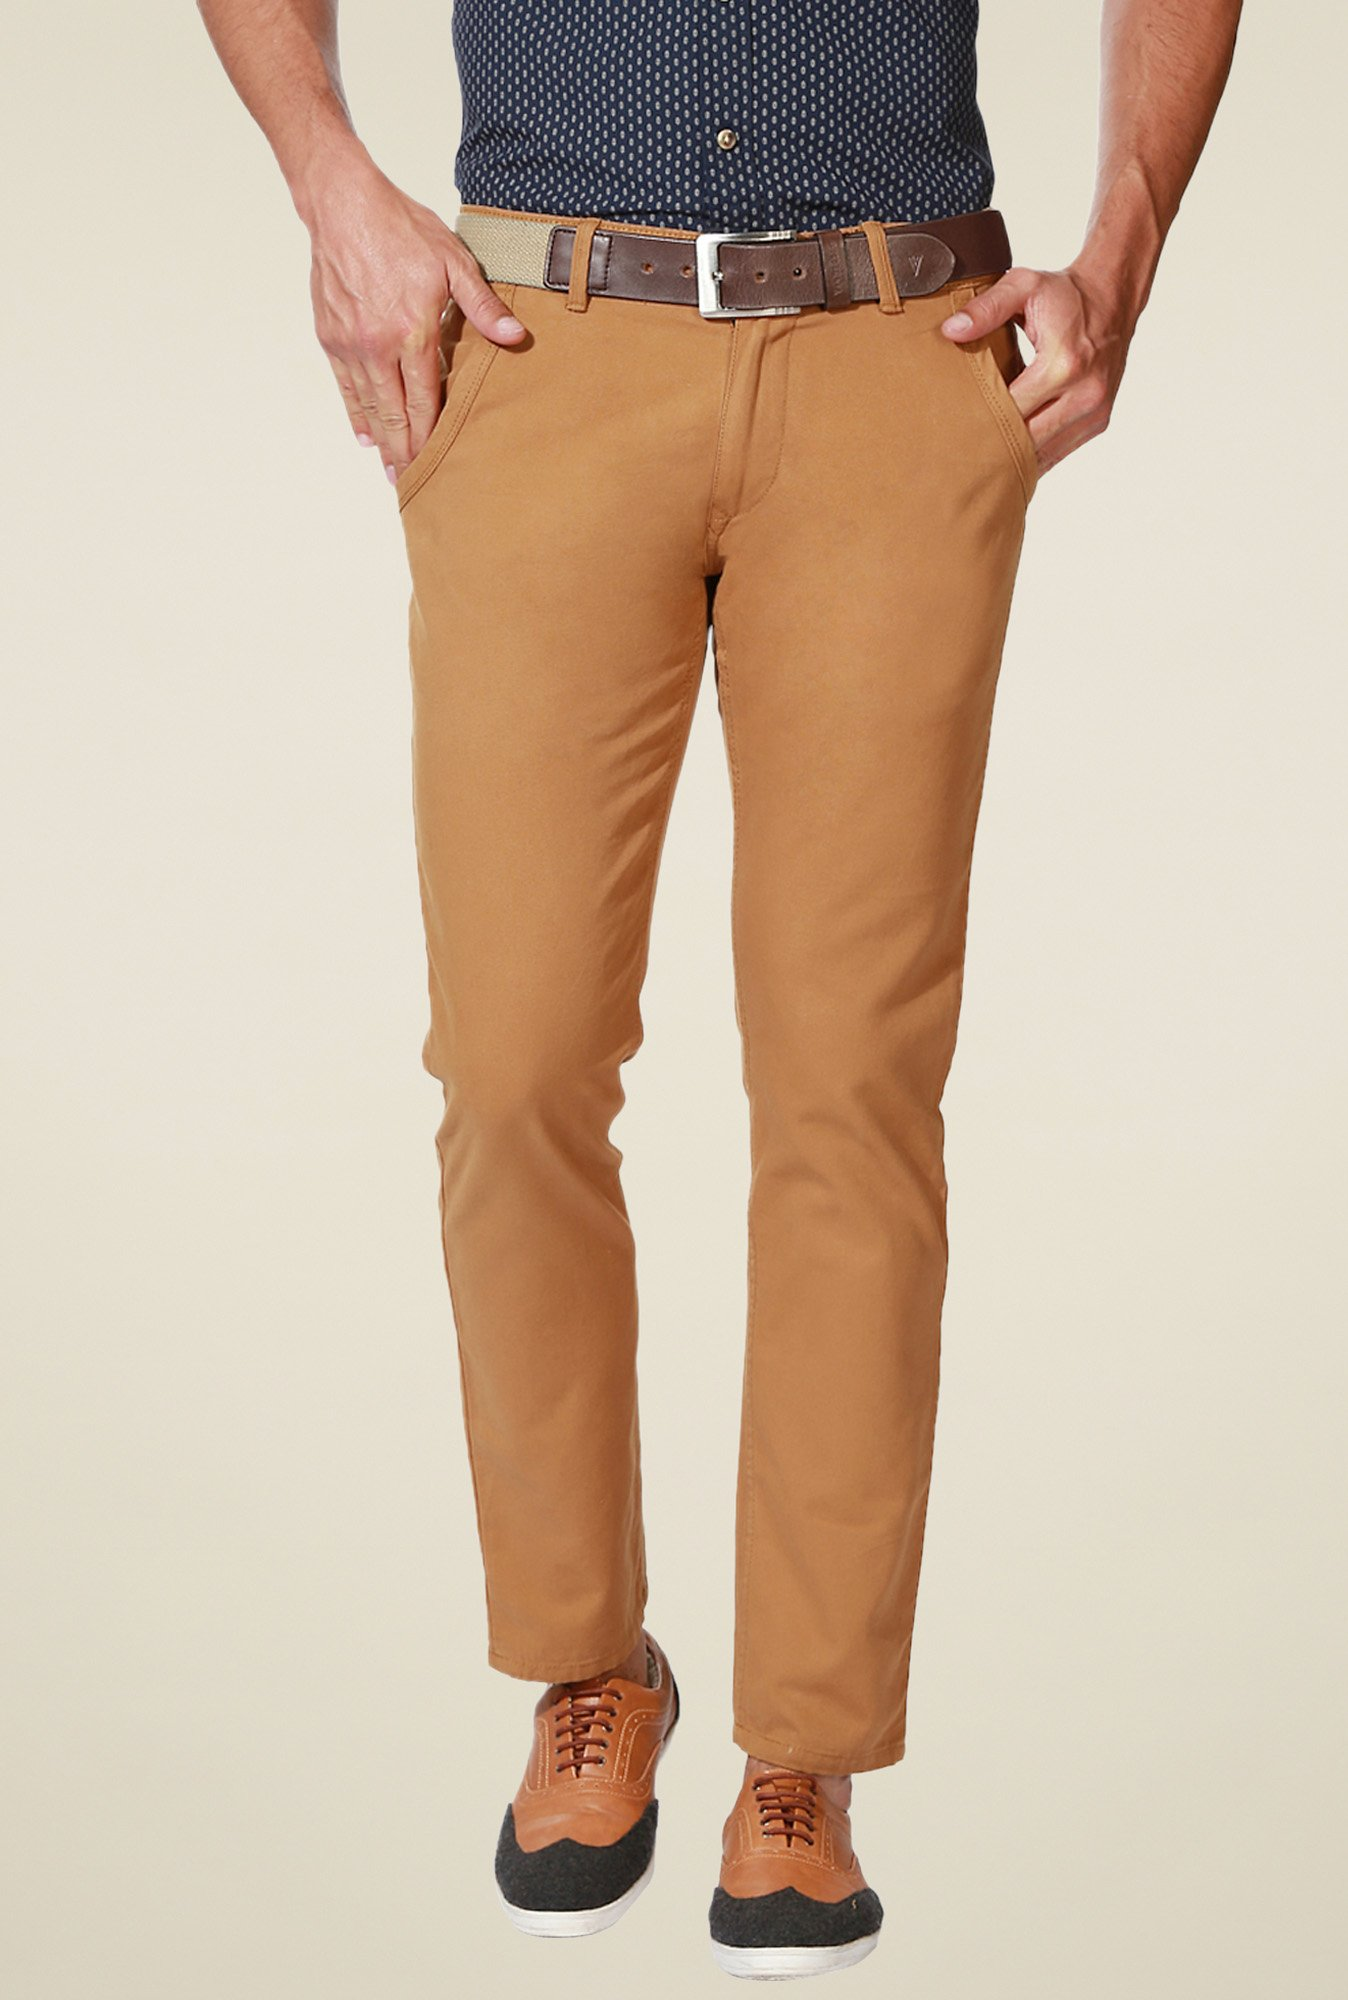 People Khaki Regular Fit Cotton Trousers